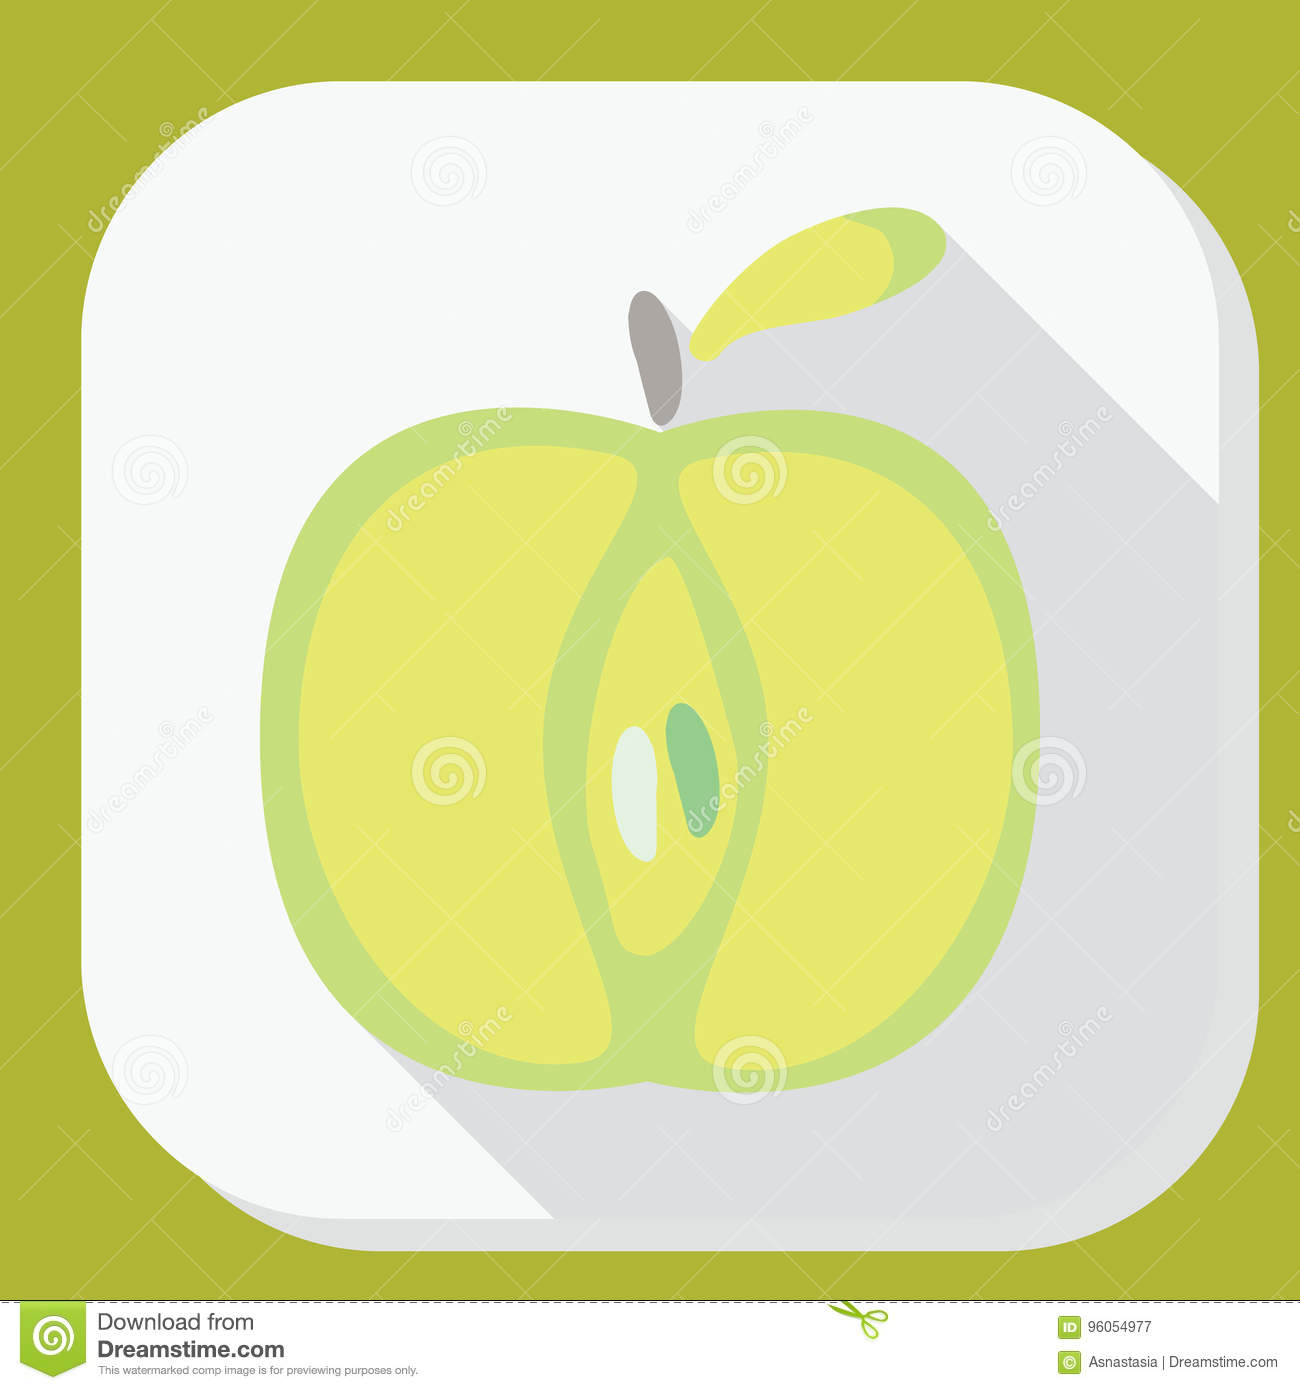 green apple sign icon with long shadow. fruit with leaf symbol